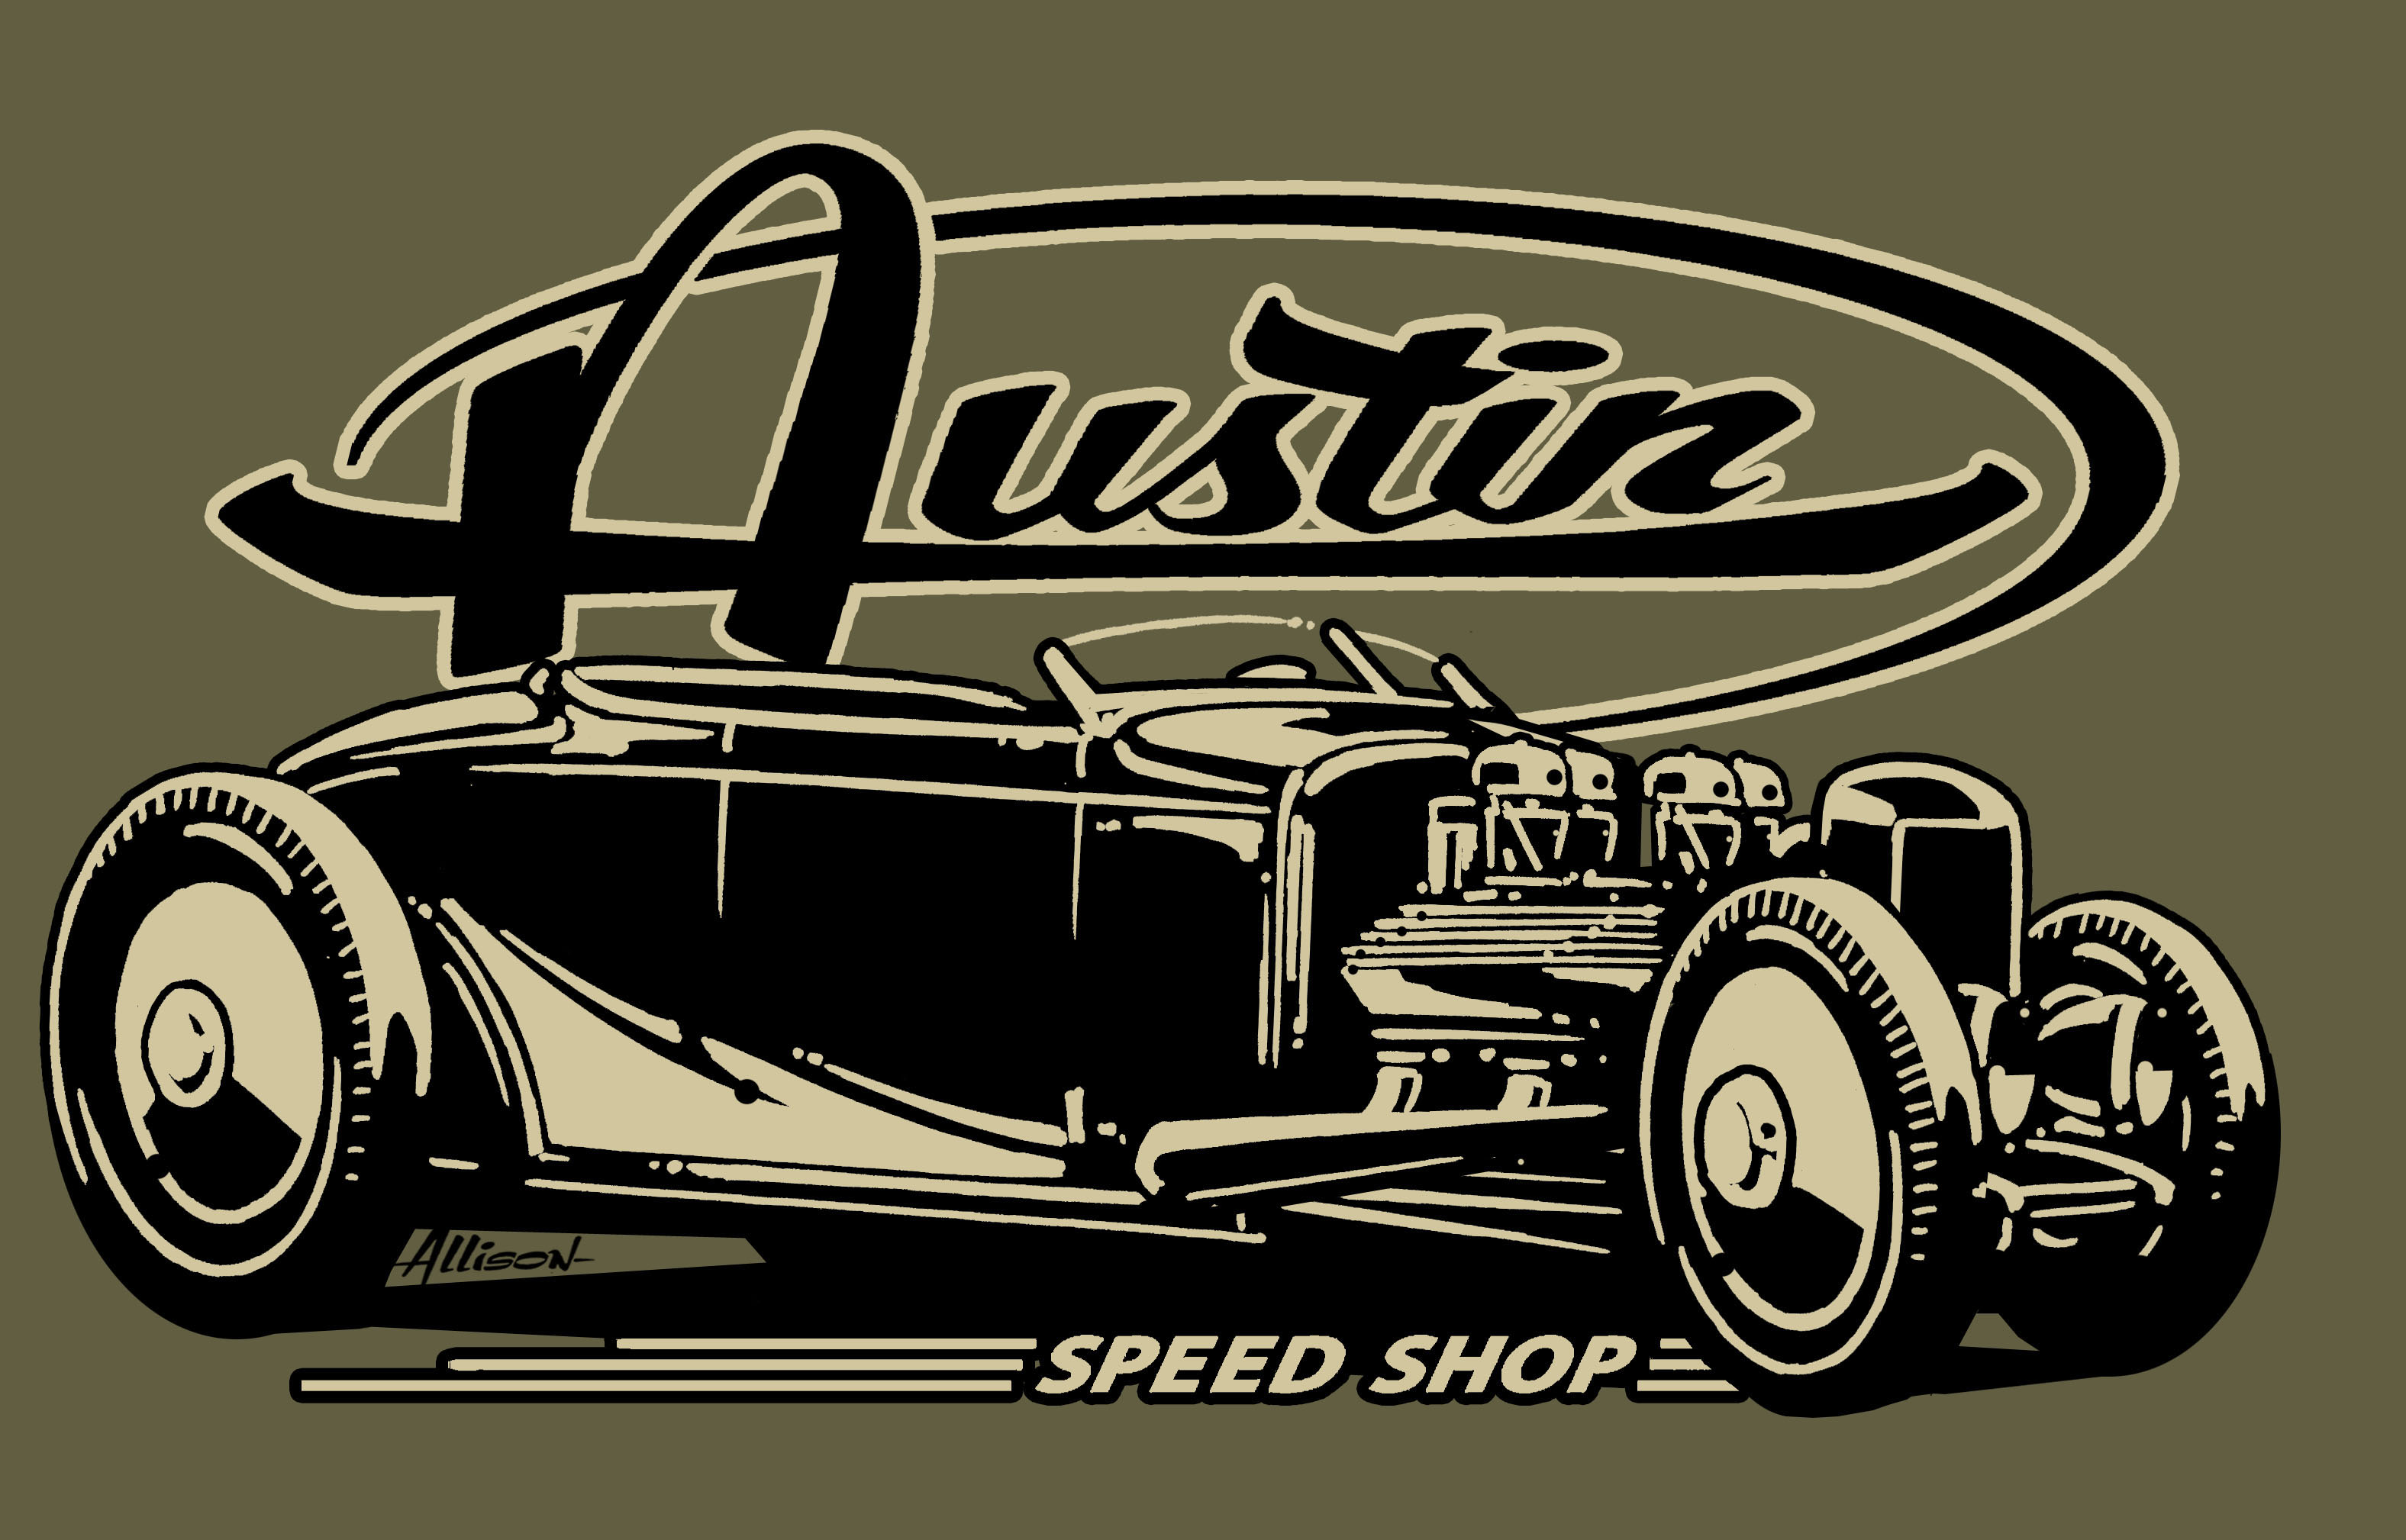 AUSTIN SPEED SHOP T